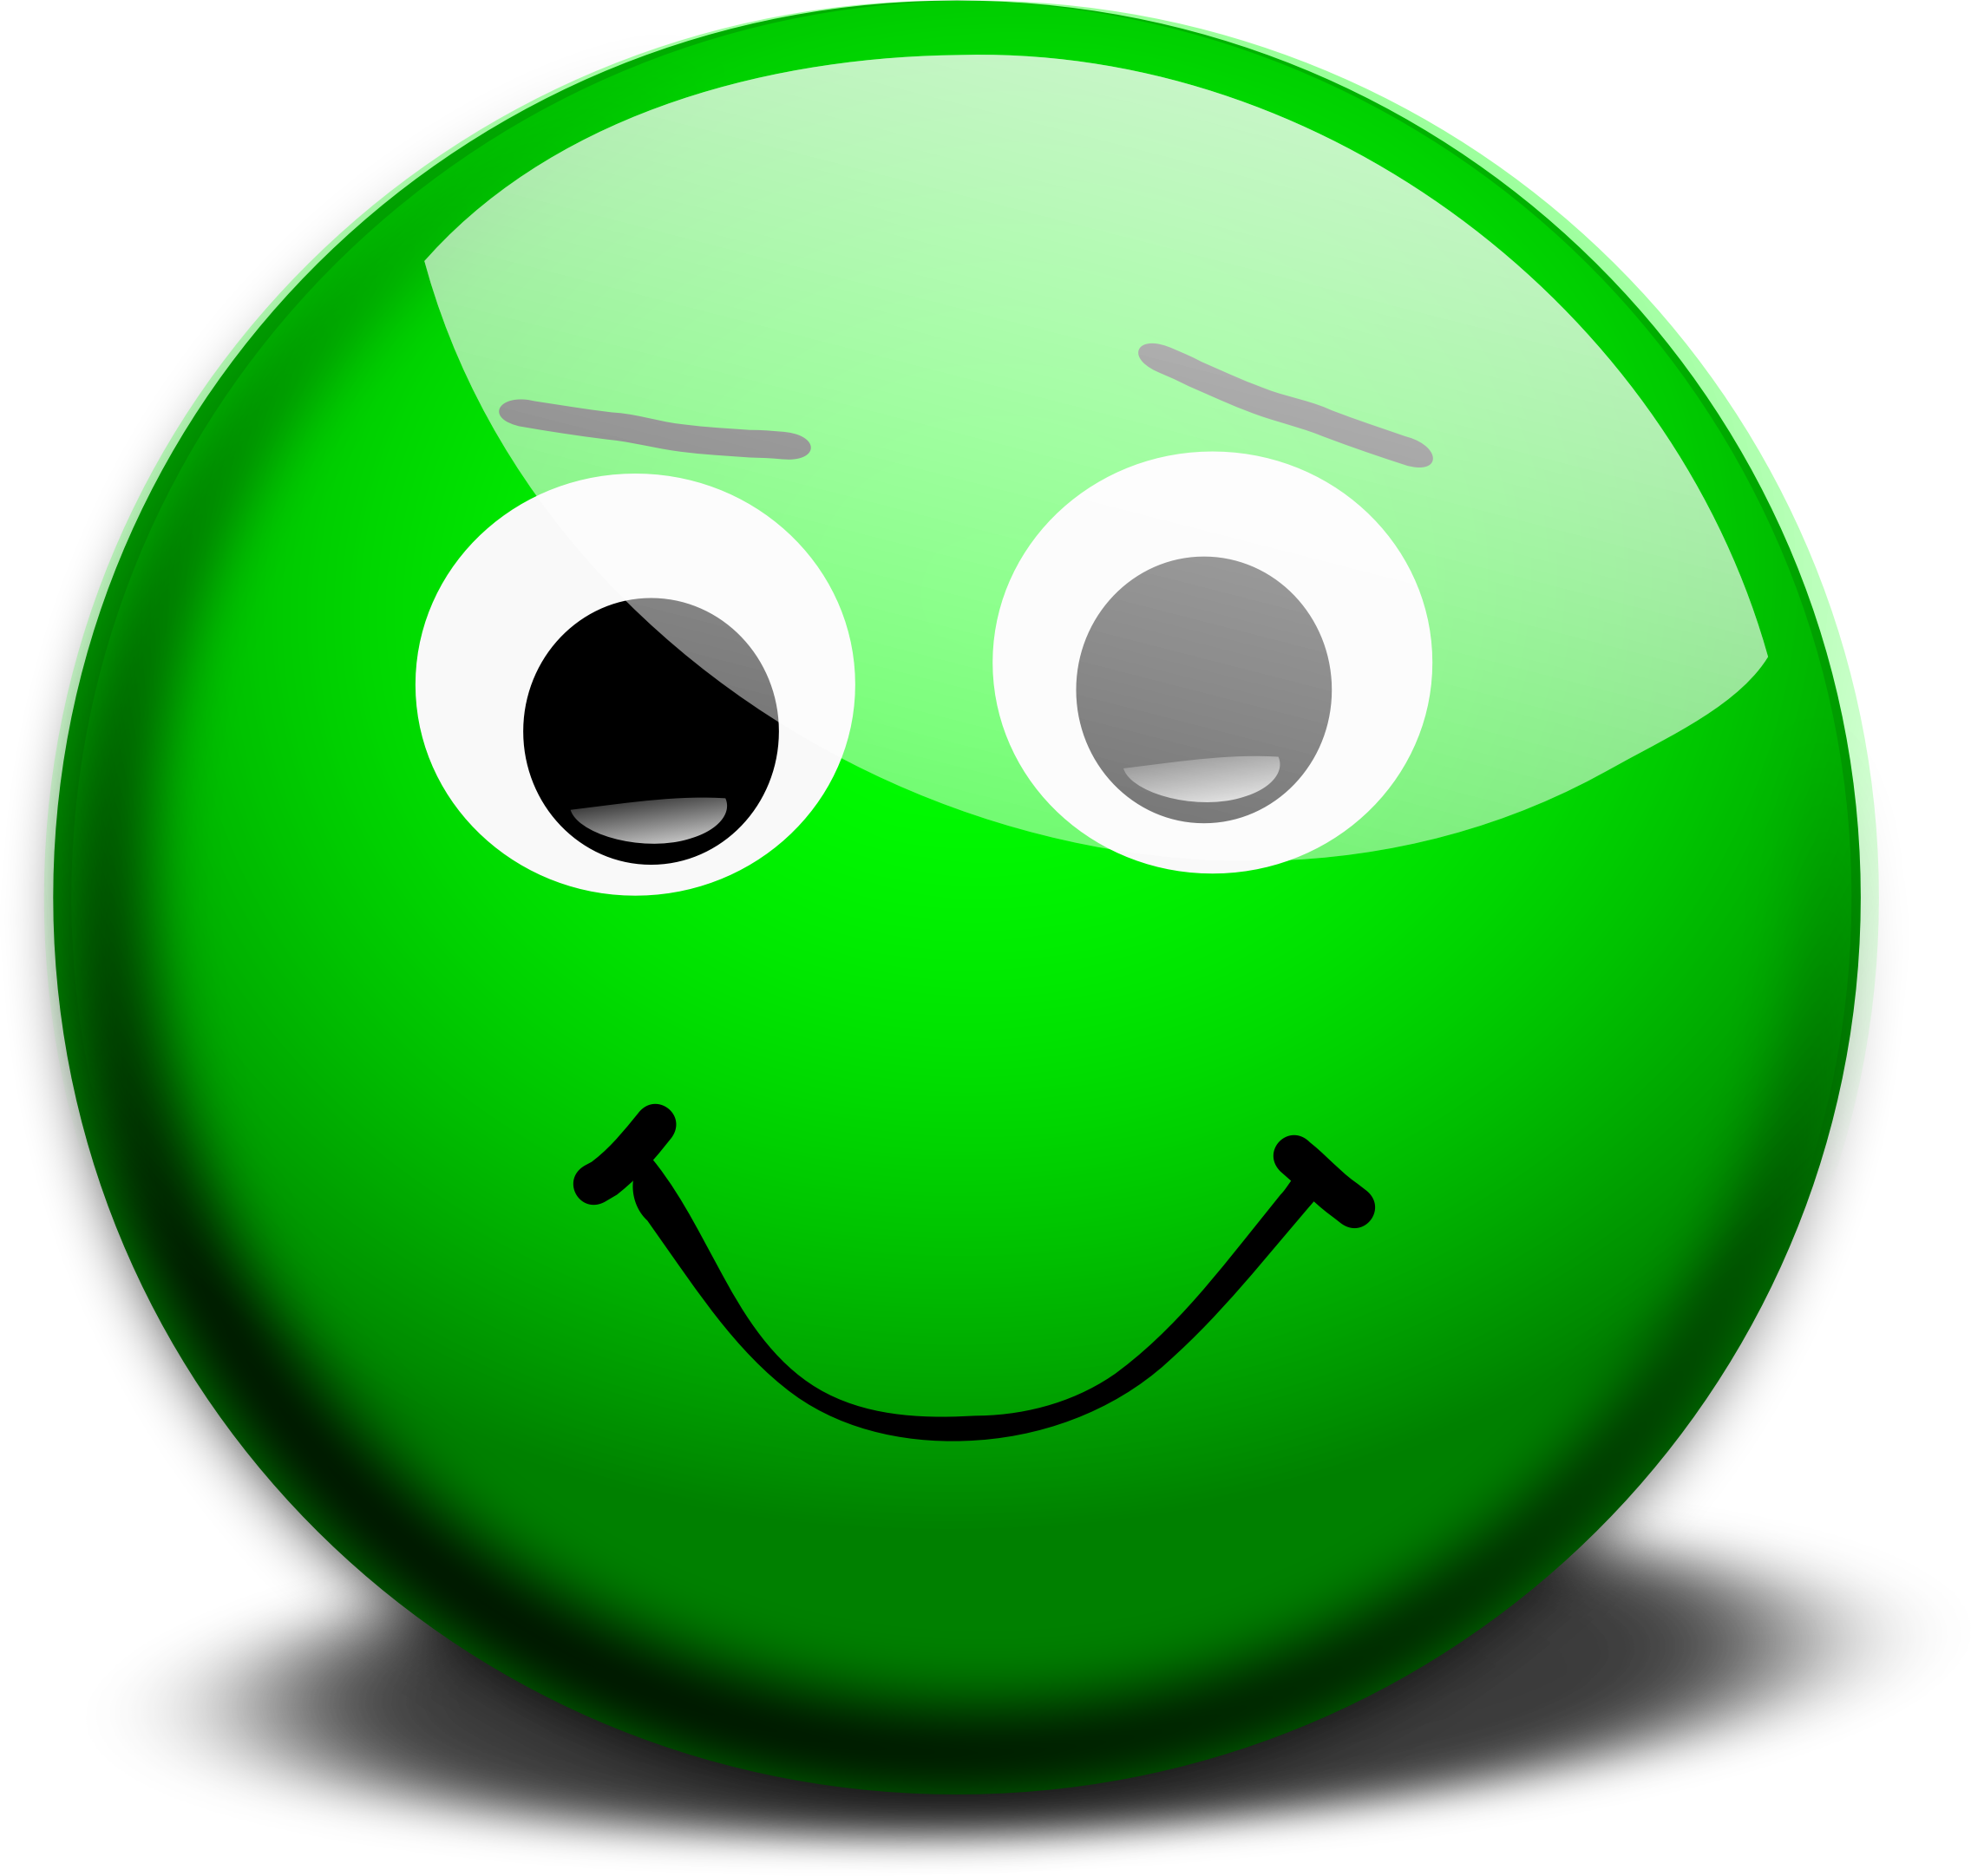 jpg royalty free download Big image png. Clipart happy face